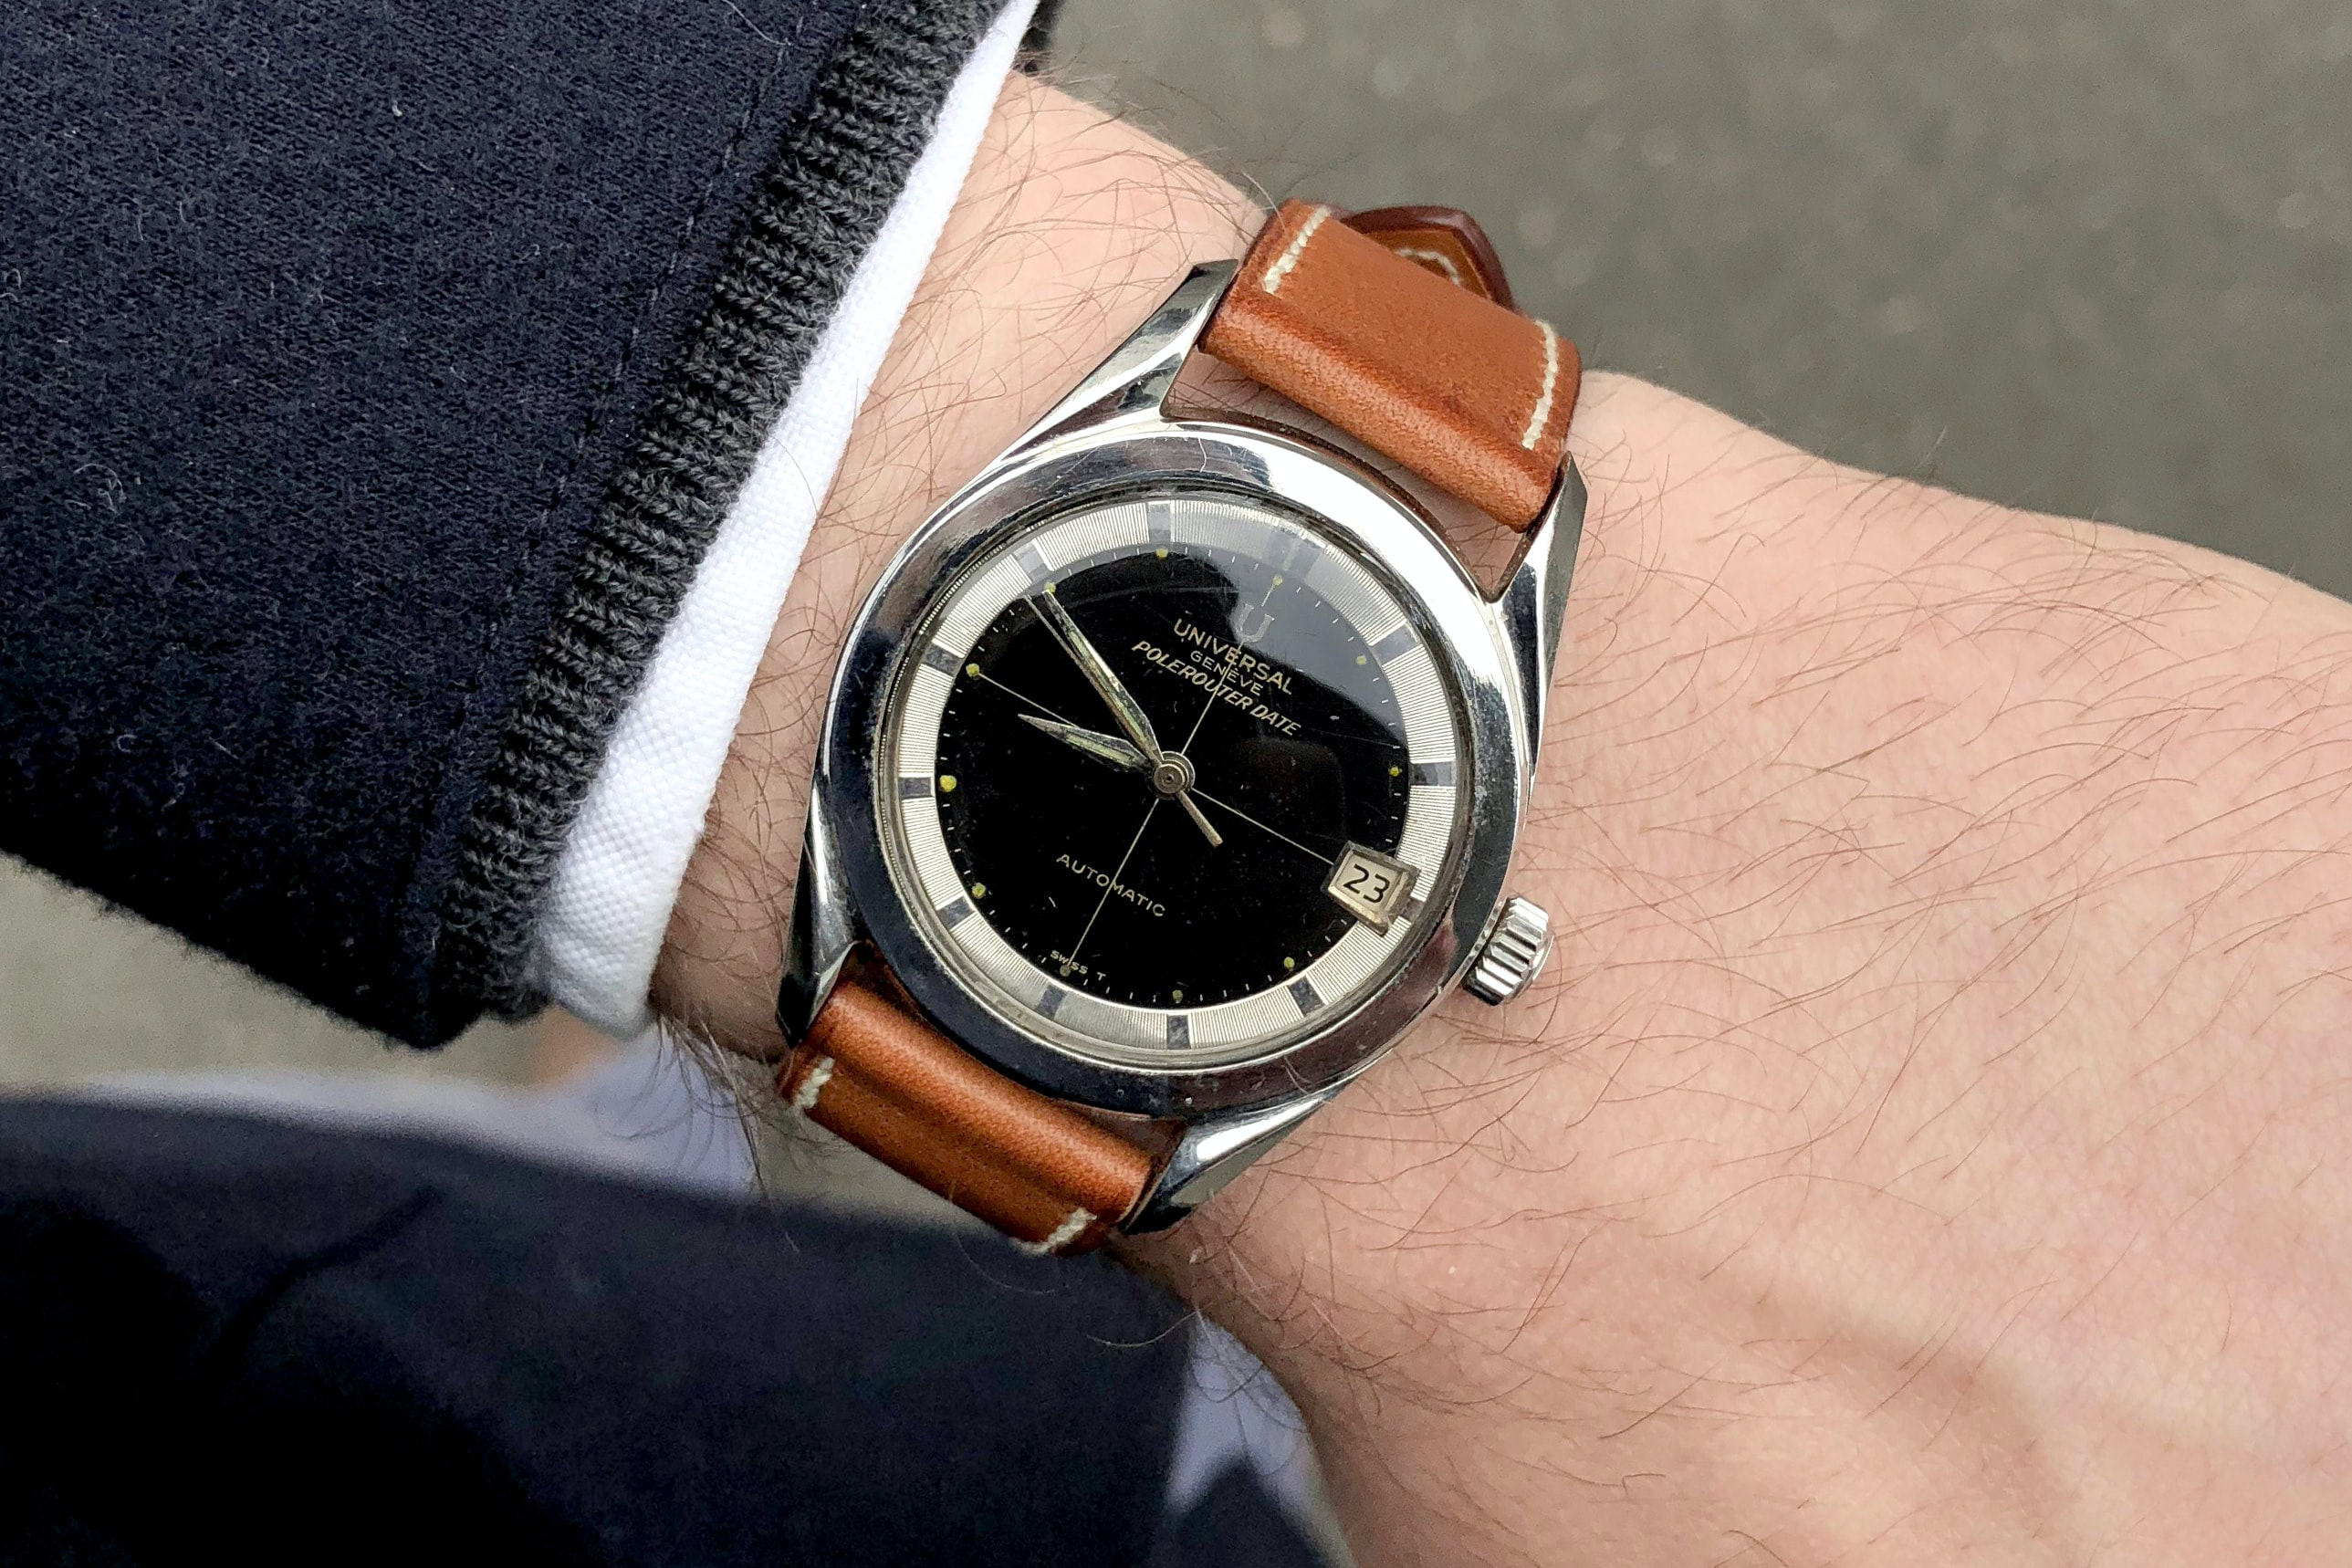 Editors' Picks: The Best Entry-Level Vintage Watches polerouter 01